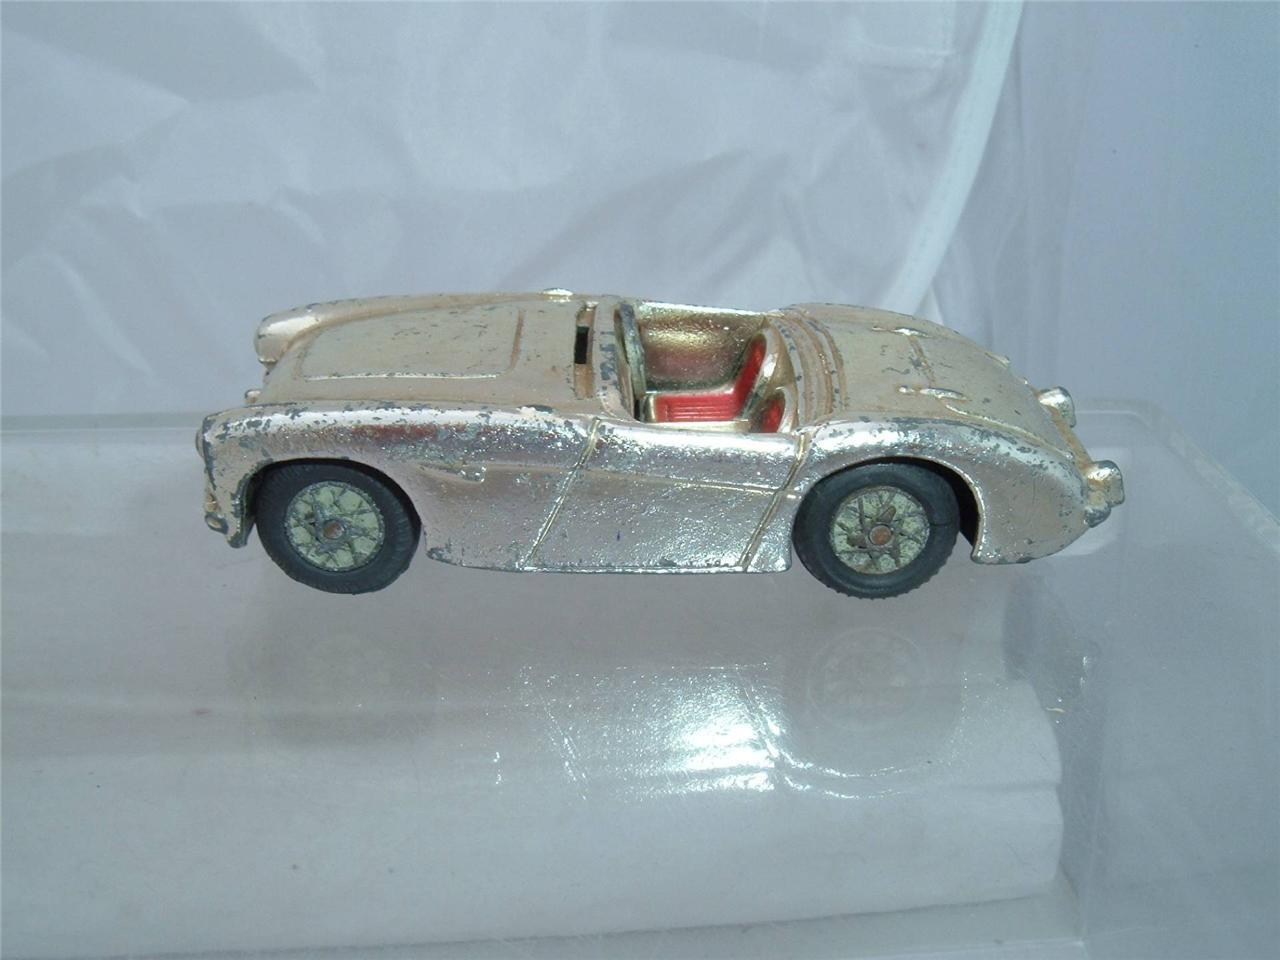 TROPHY MODELS AUSTIN HEALEY VINTAGE USED CONDITION NO WINDSCREEN RARE MODEL